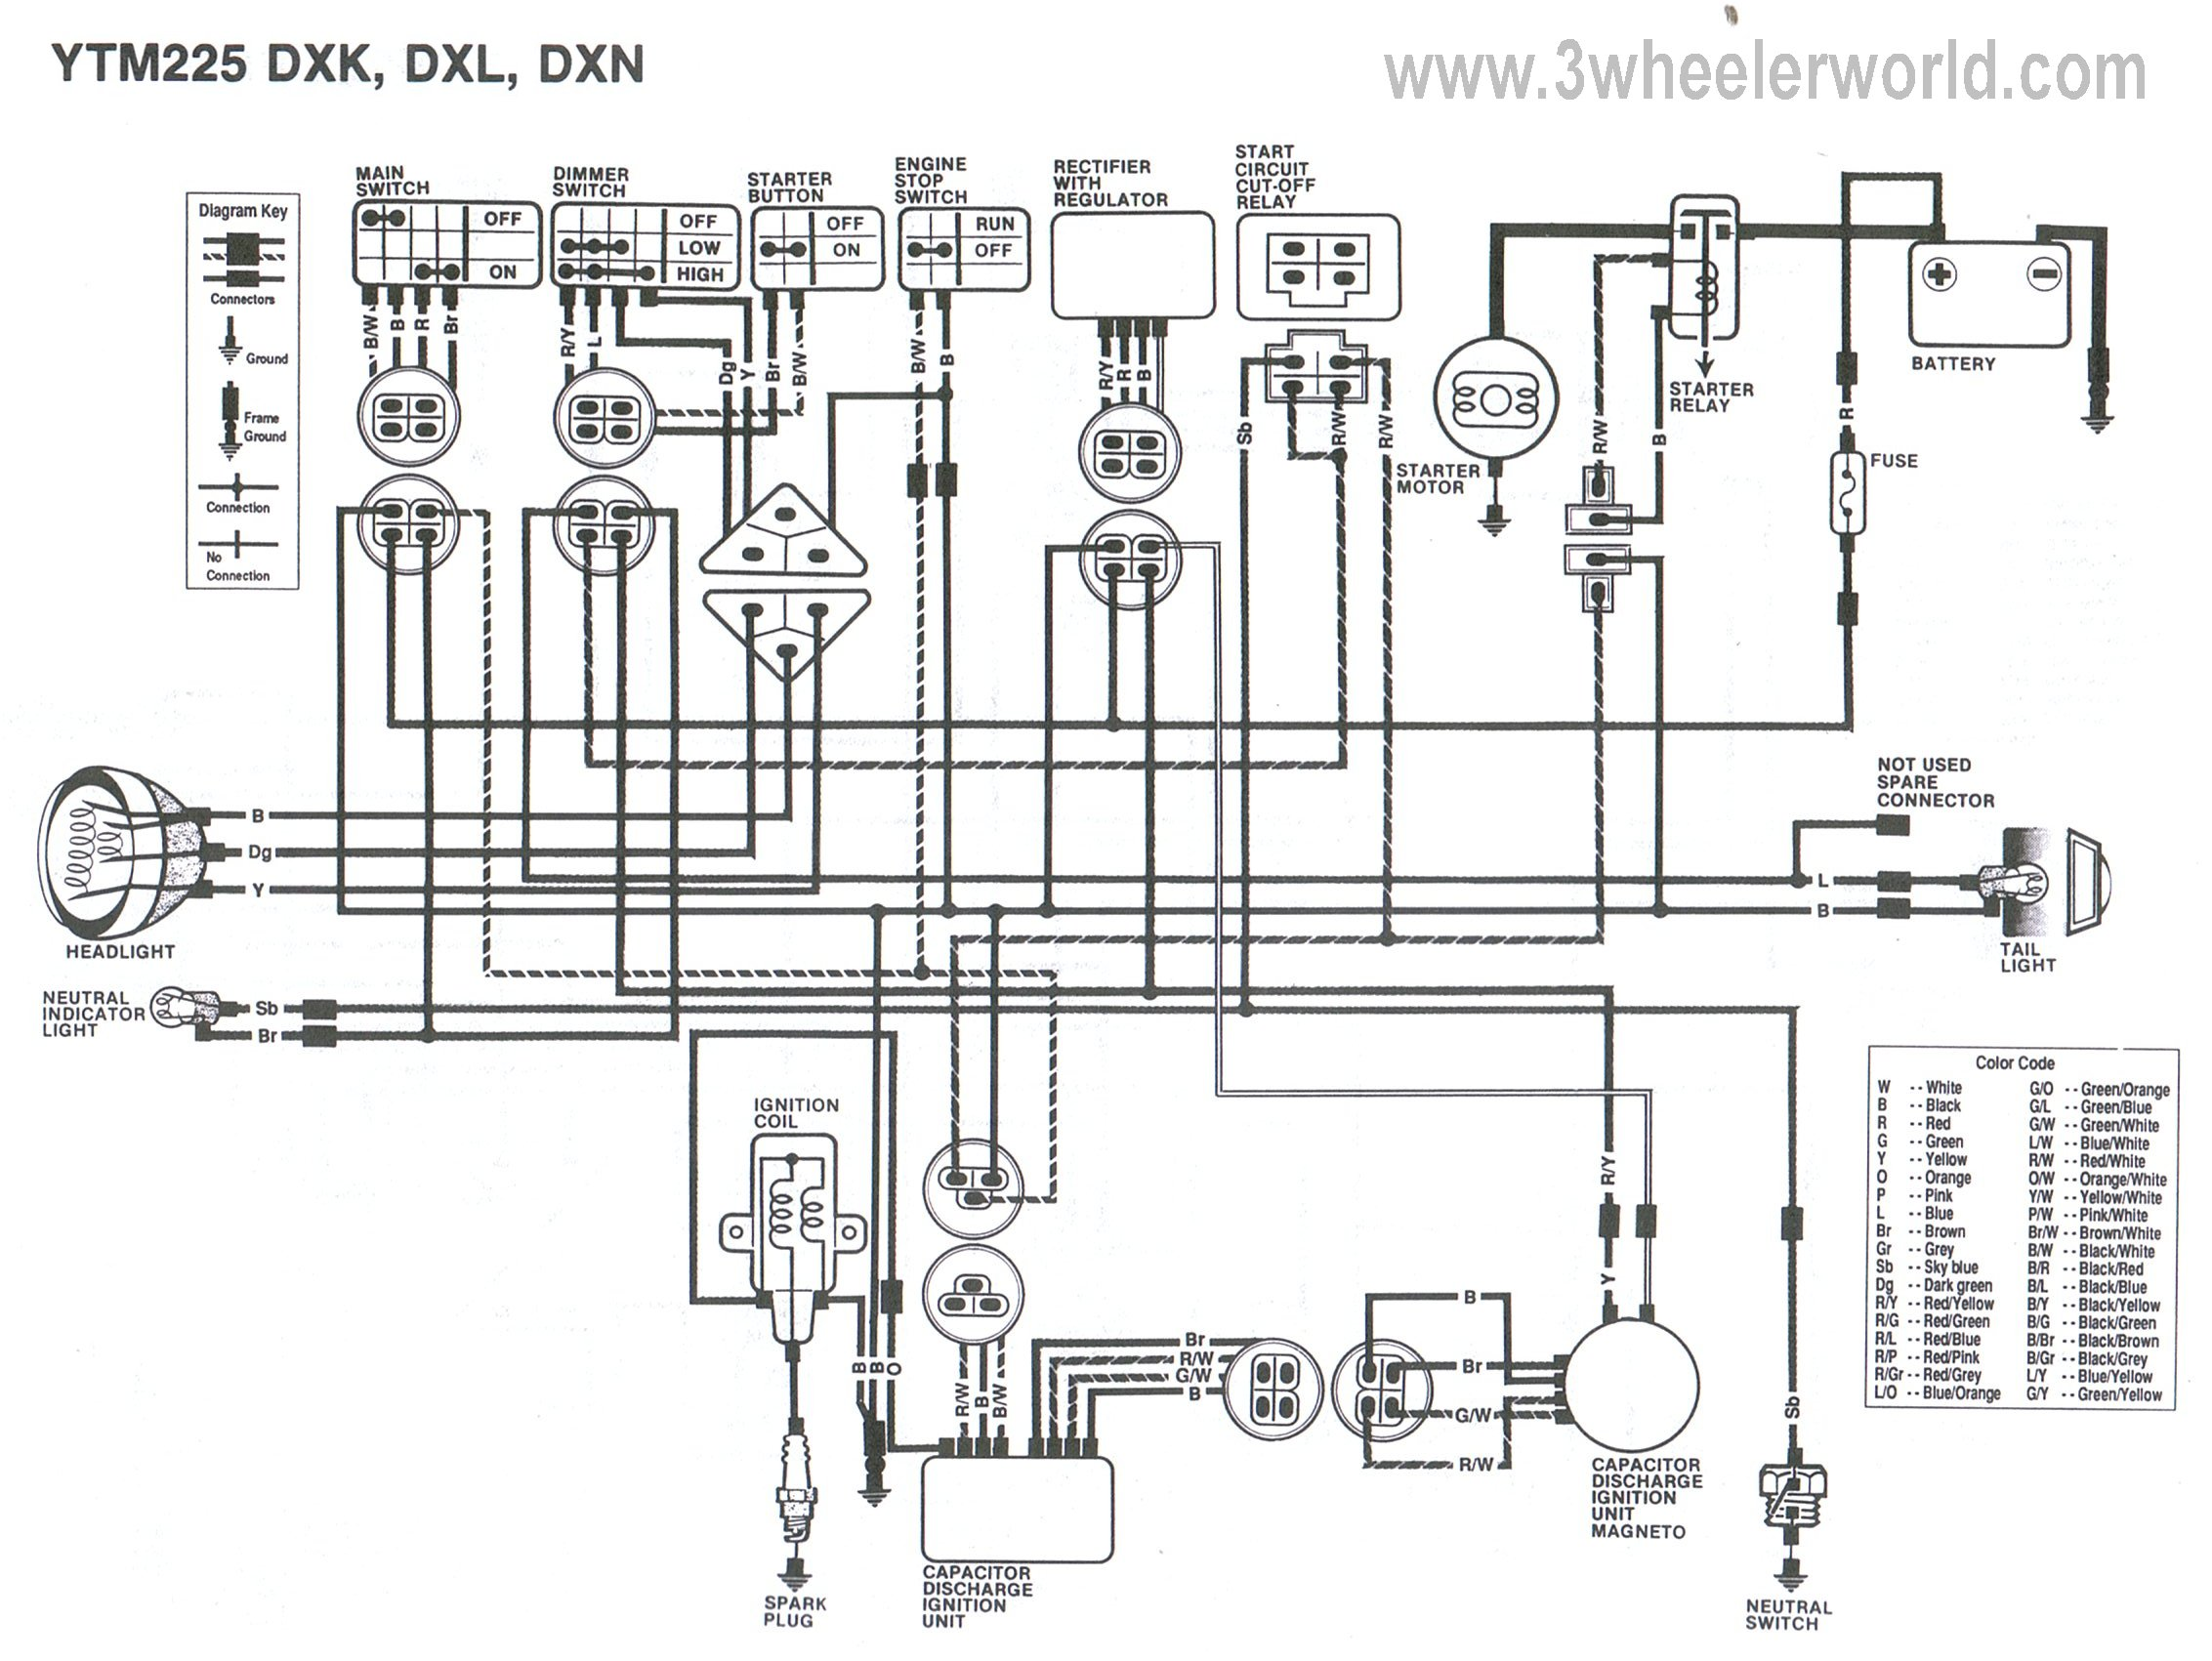 ignition switch wiring diagram 1973 dt3 yamaha motorcycle    wiring       diagram       yamaha    dt 125    wiring    library     wiring       diagram       yamaha    dt 125    wiring    library